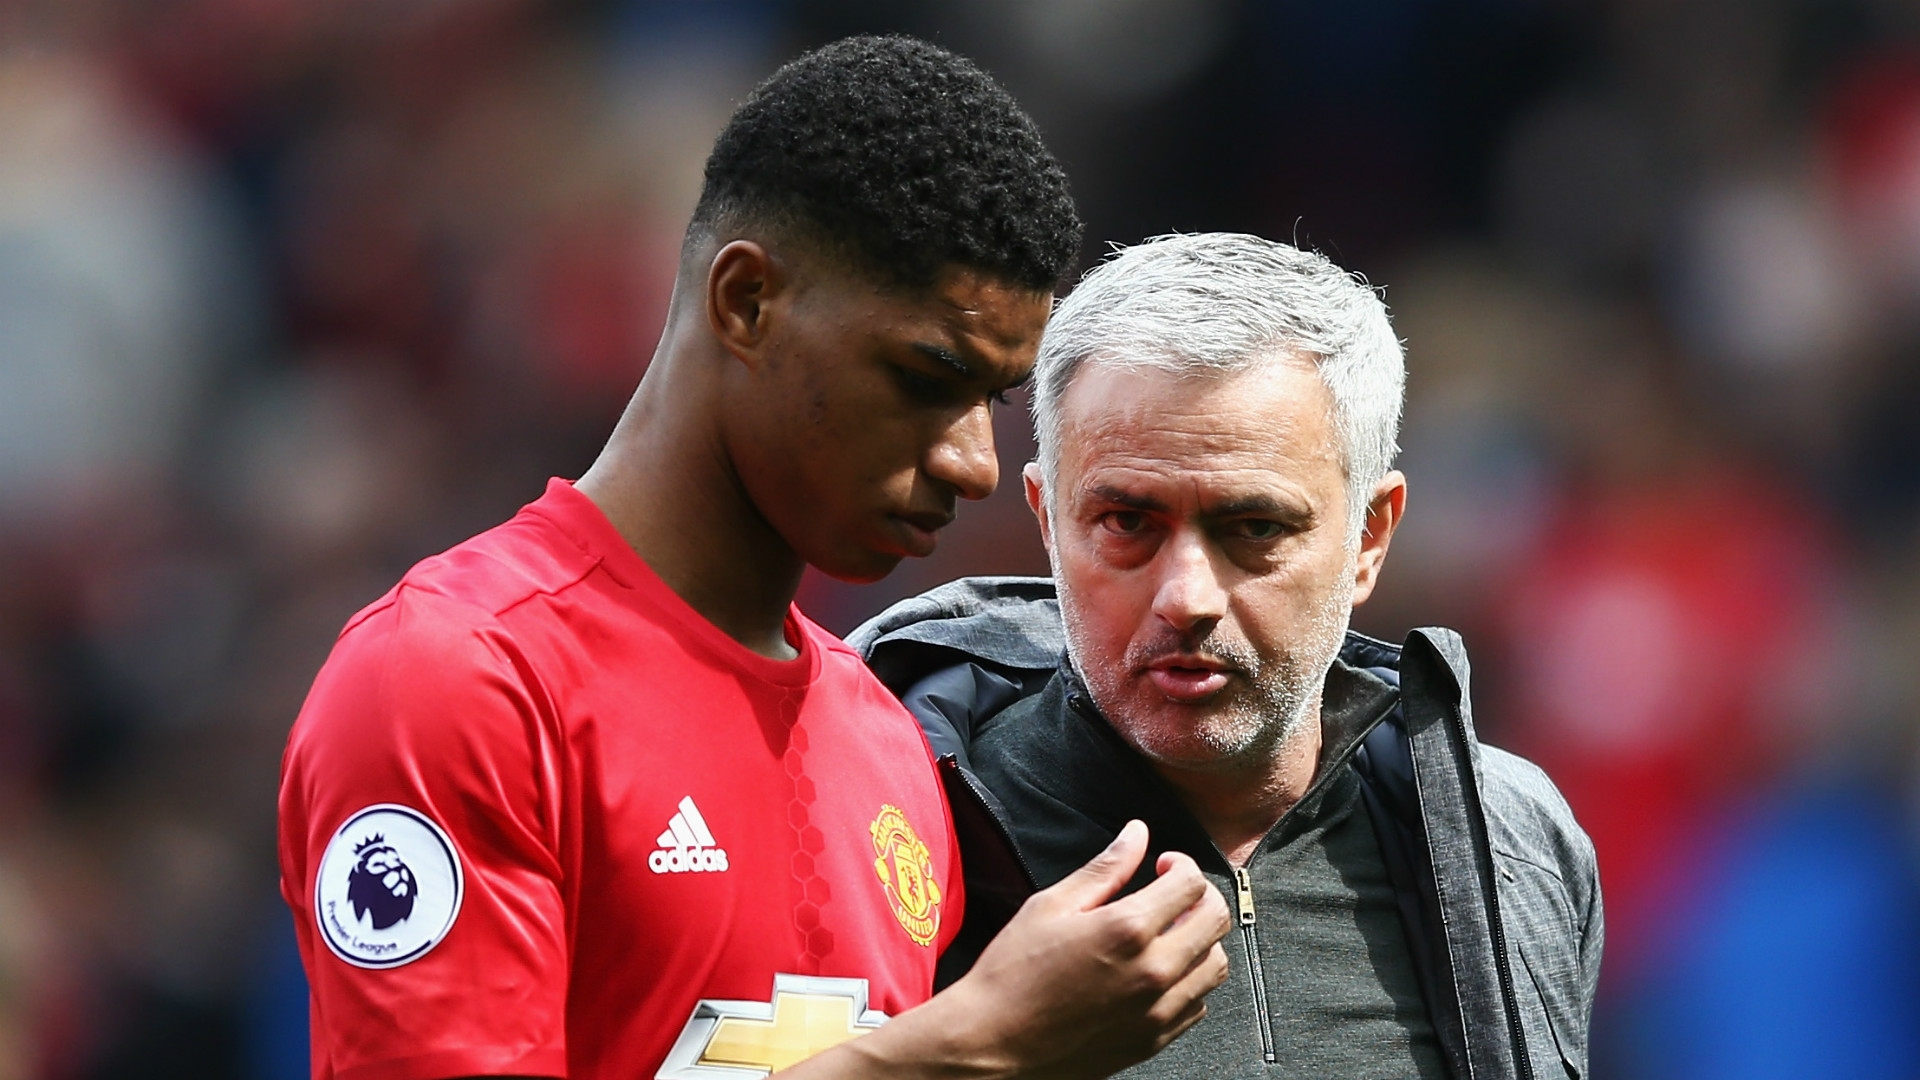 Marcus Rashford has the task of replacing lead striker Zlatan Ibrahimovic out through injury